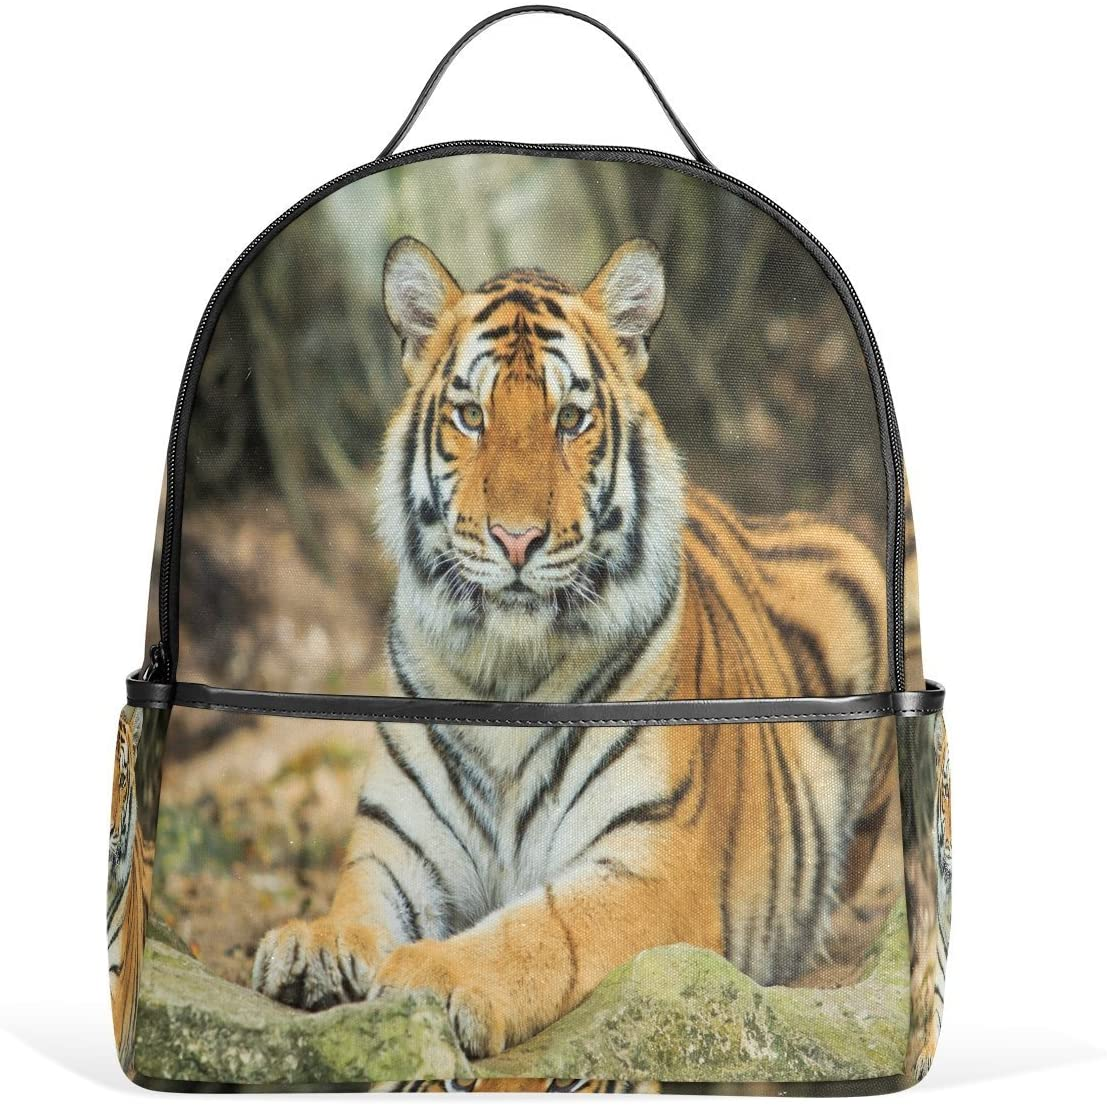 Use4 Tiger Scenery Polyester Backpack School Travel Bag